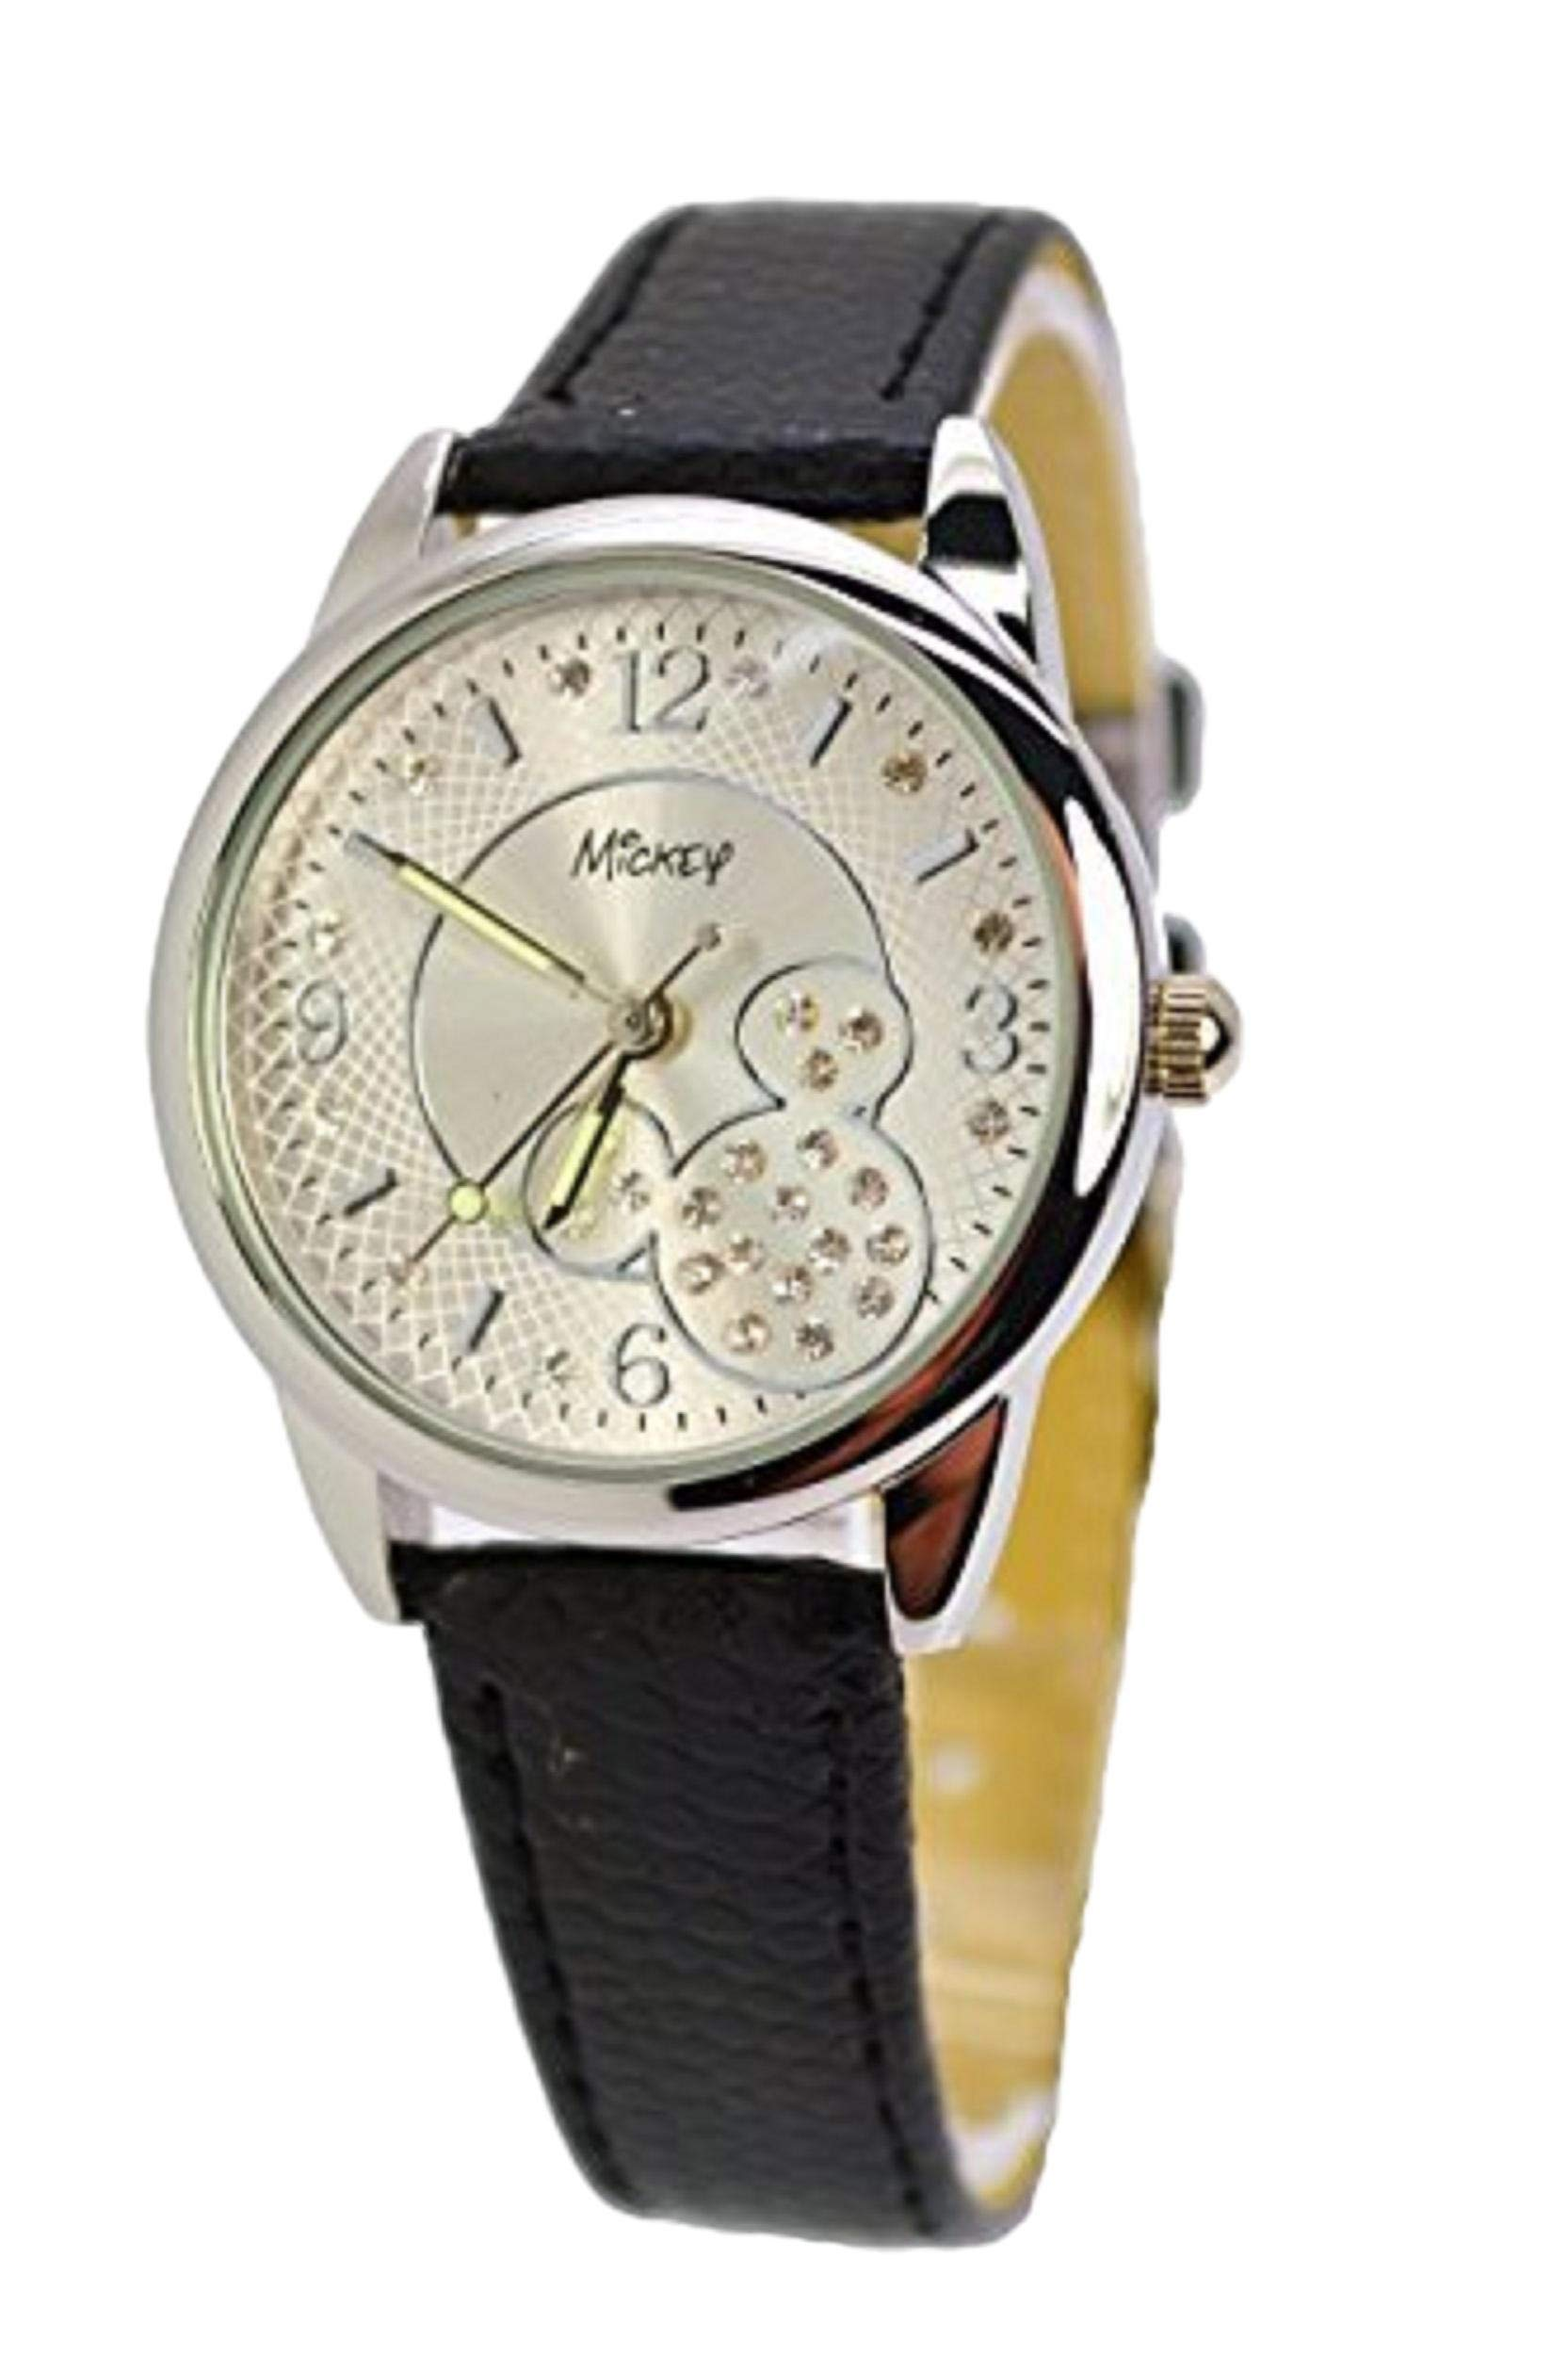 Disney Modern Watch for Girls w/Australian Crystals Mickey Mouse.Analog Large Display. (1)